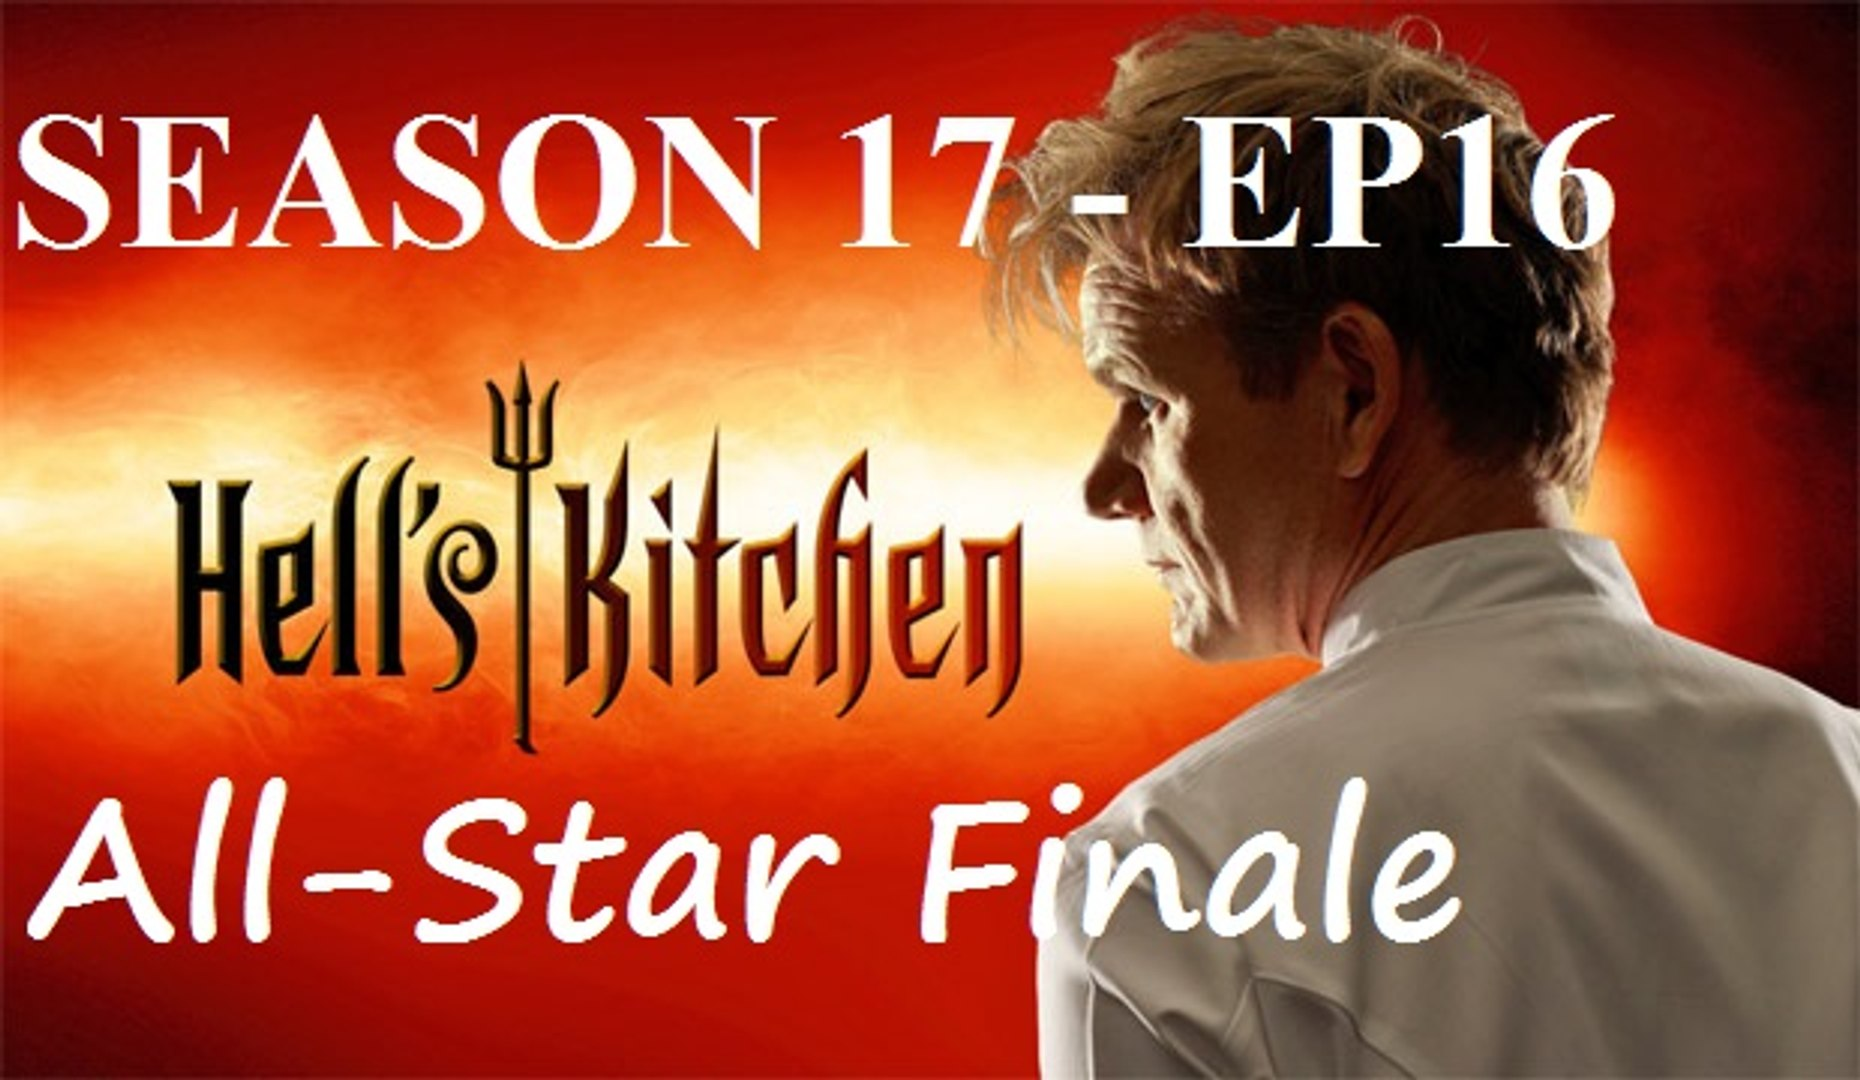 Hell S Kitchen Season 17 Episode 16 All Star Finale